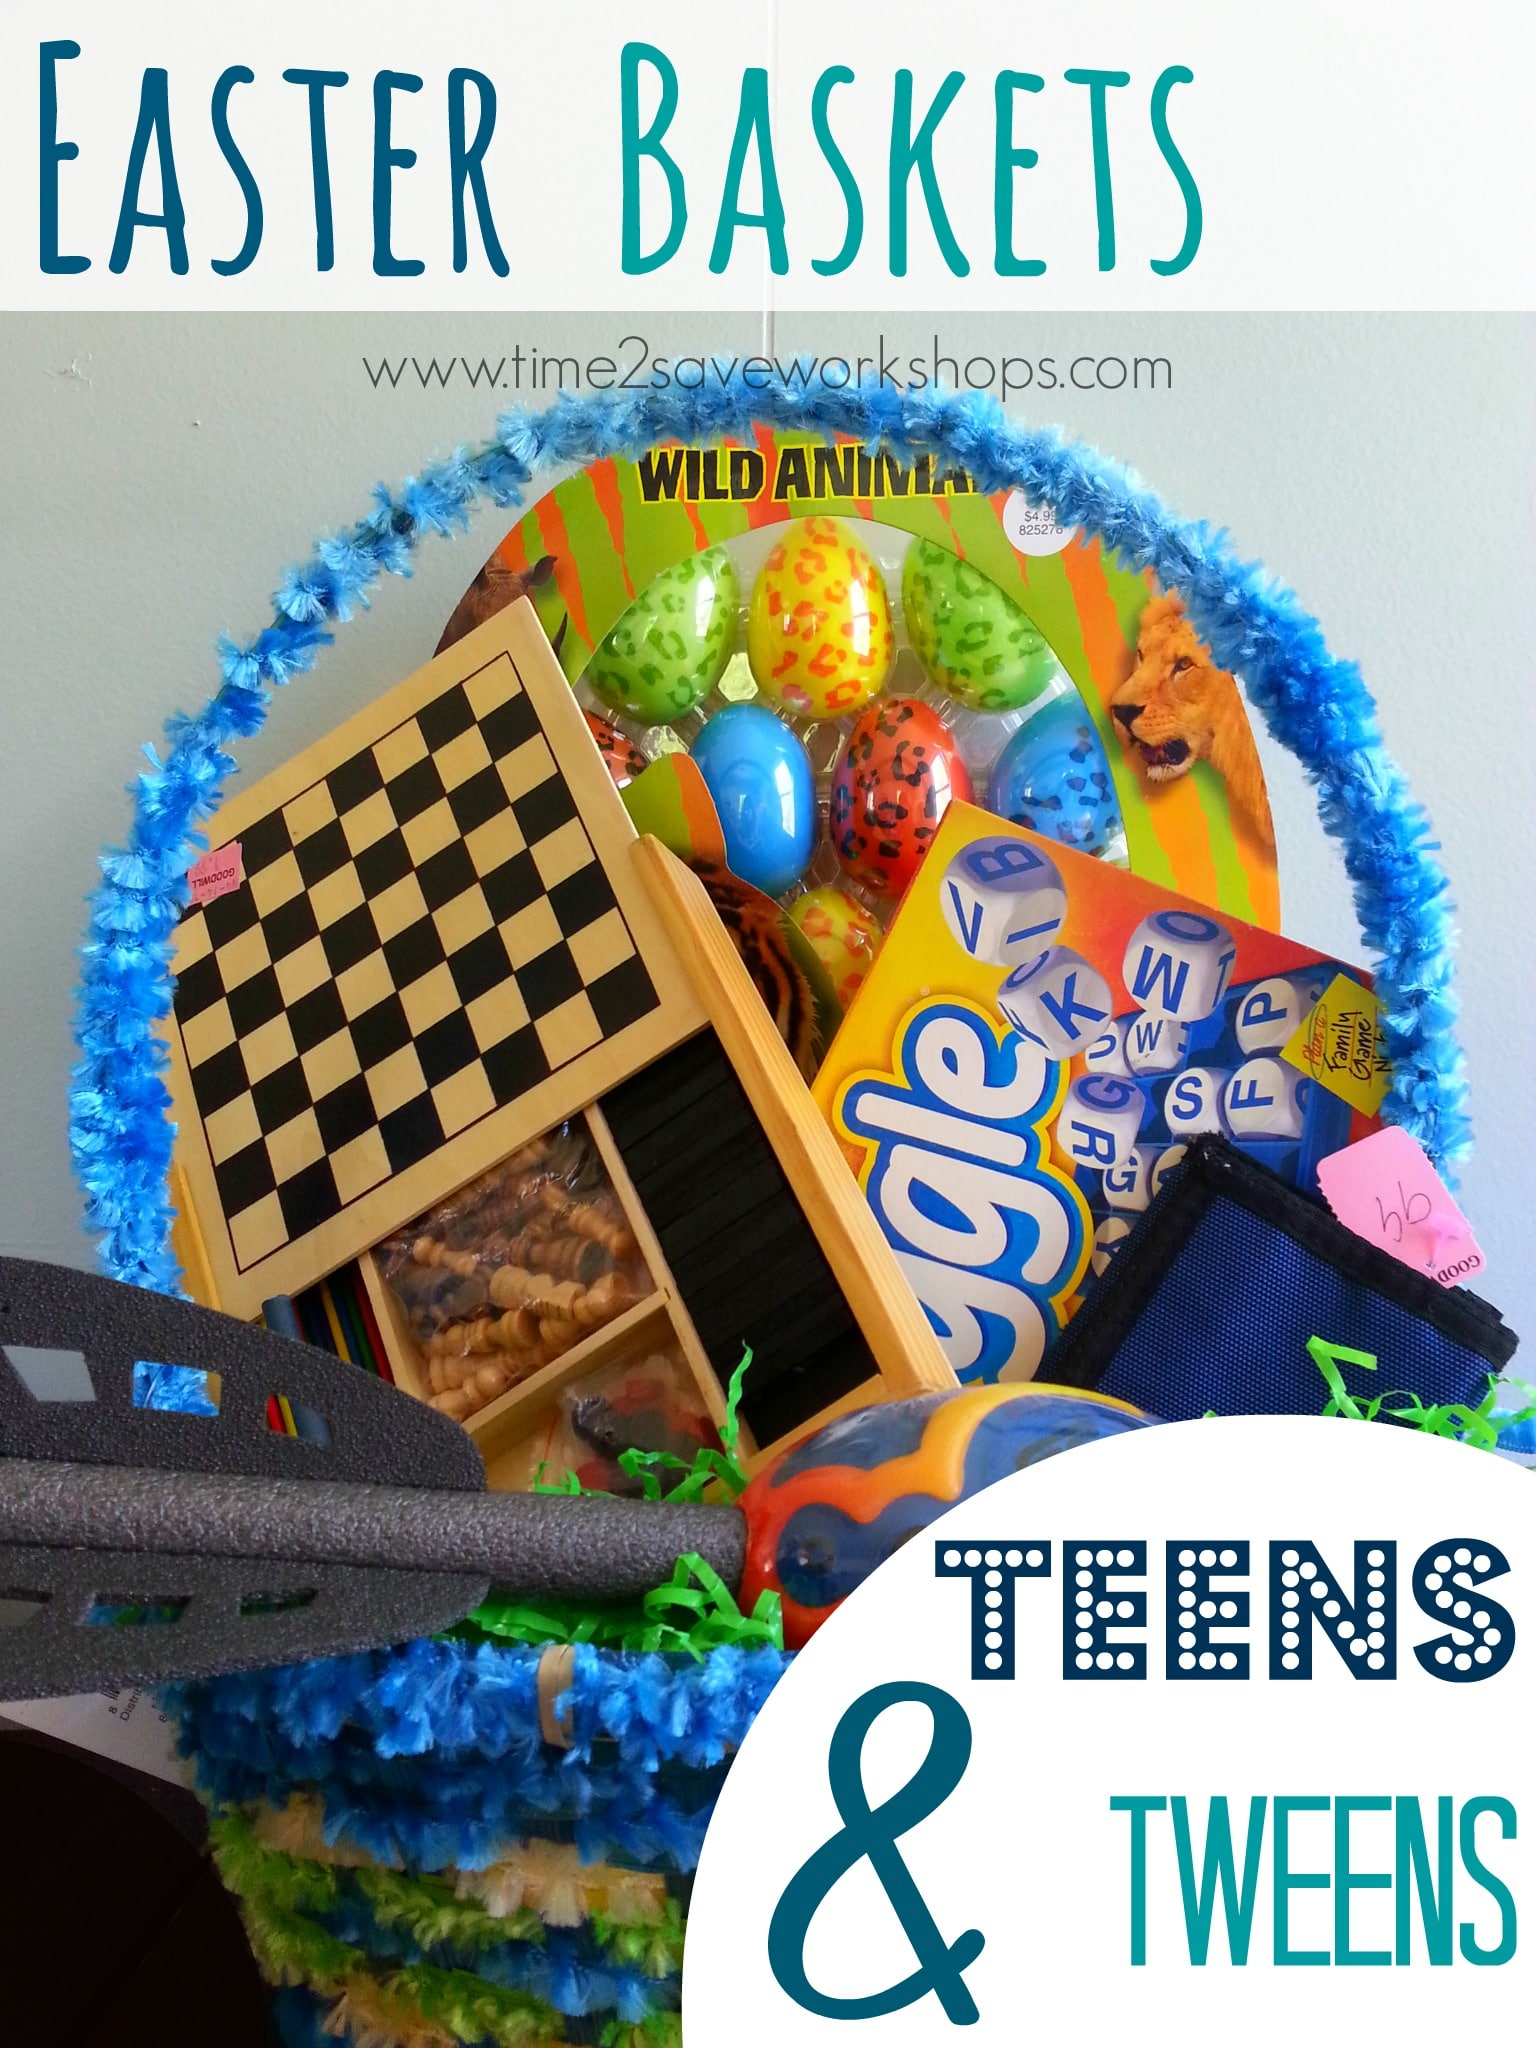 Easter baskets for teens tweens 6 frugal ideas kasey trenum easter baskets for teens tweens 6 frugal ideas negle Gallery